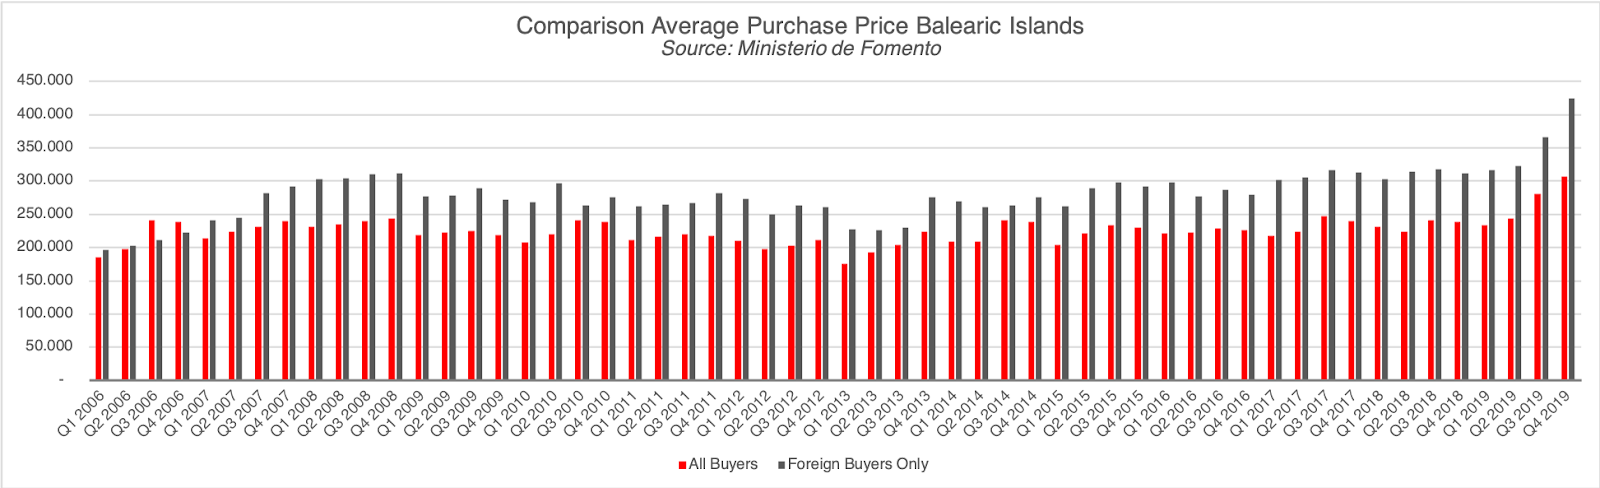 Comparison Average Purchase Price Balearic Islands